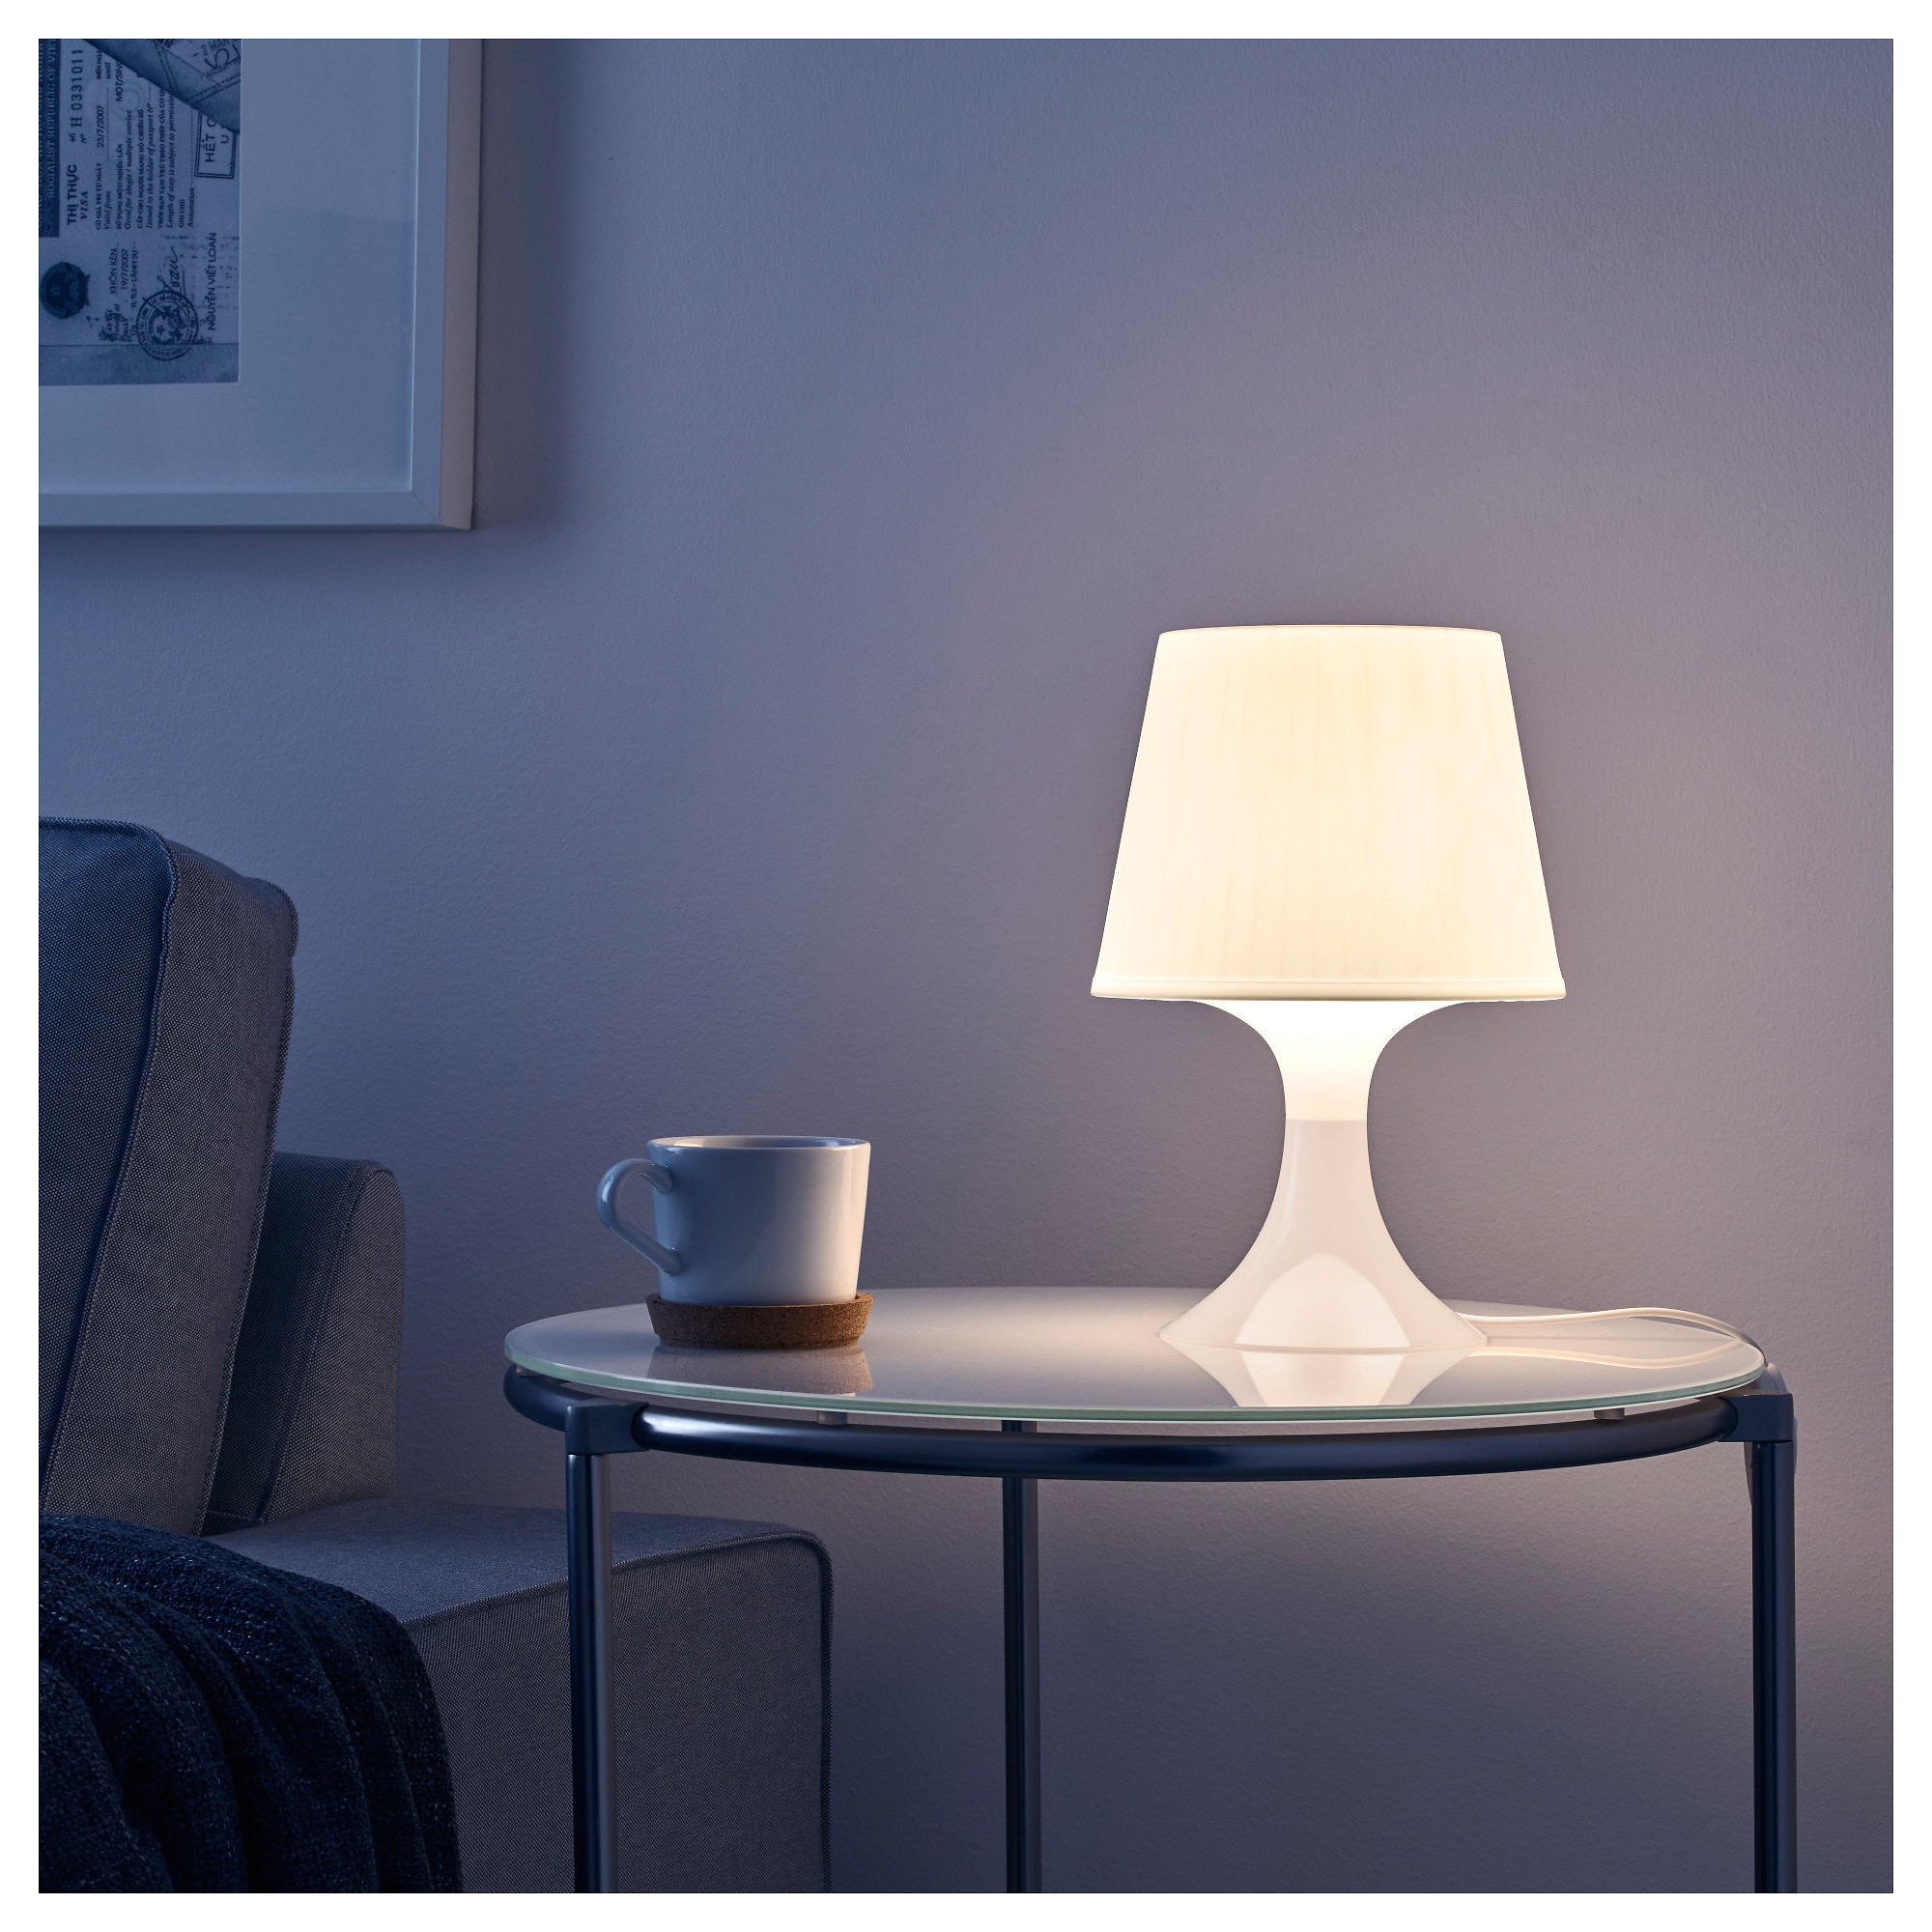 ikea lampan table lamp creates a soft cosy mood light in your room